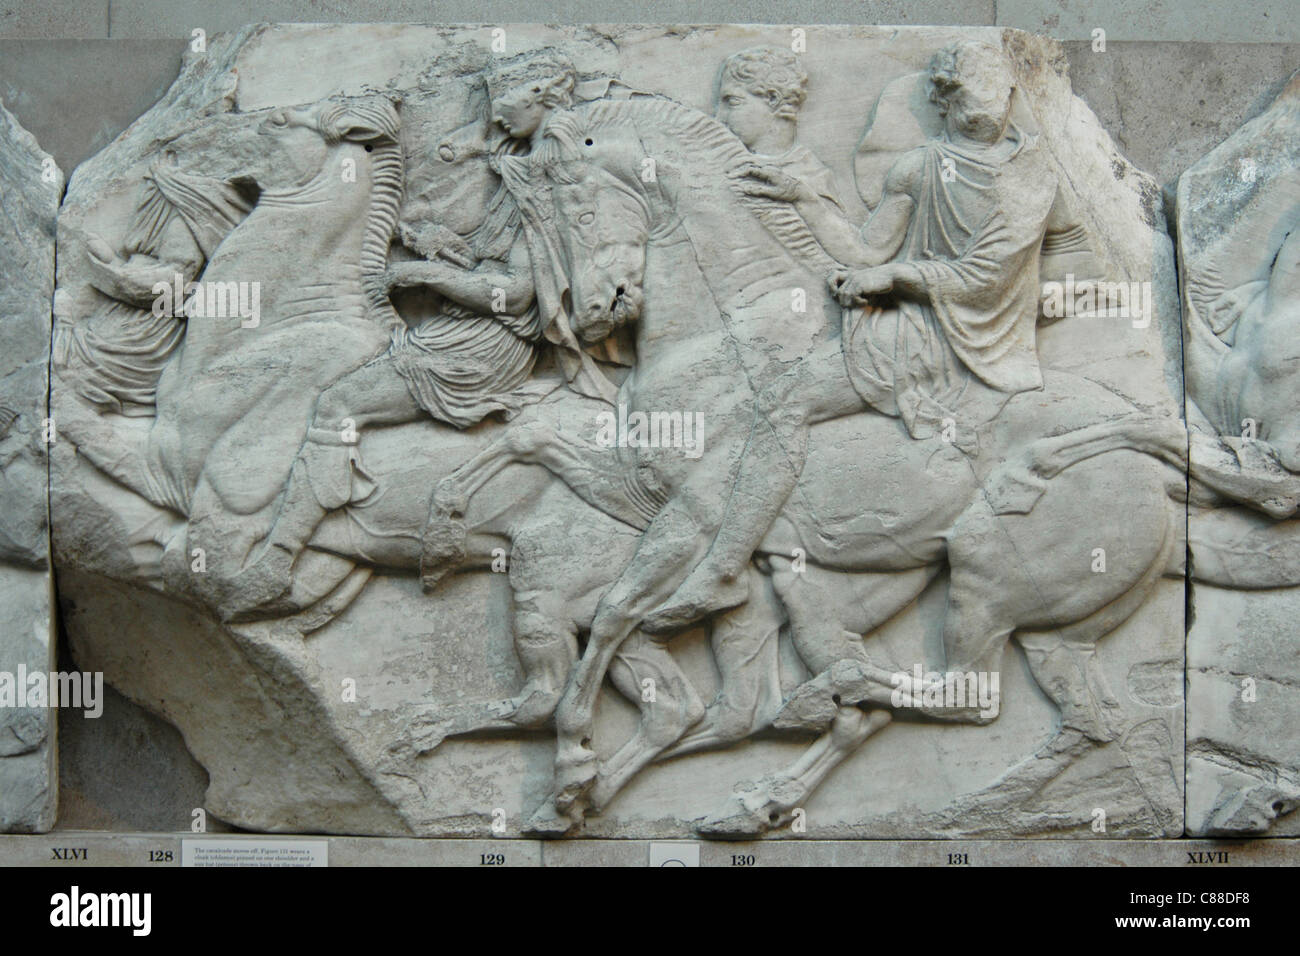 Detail of the famous Elgine's marble frieze from Parthenon seen at the British Museum in London, England, UK. - Stock Image